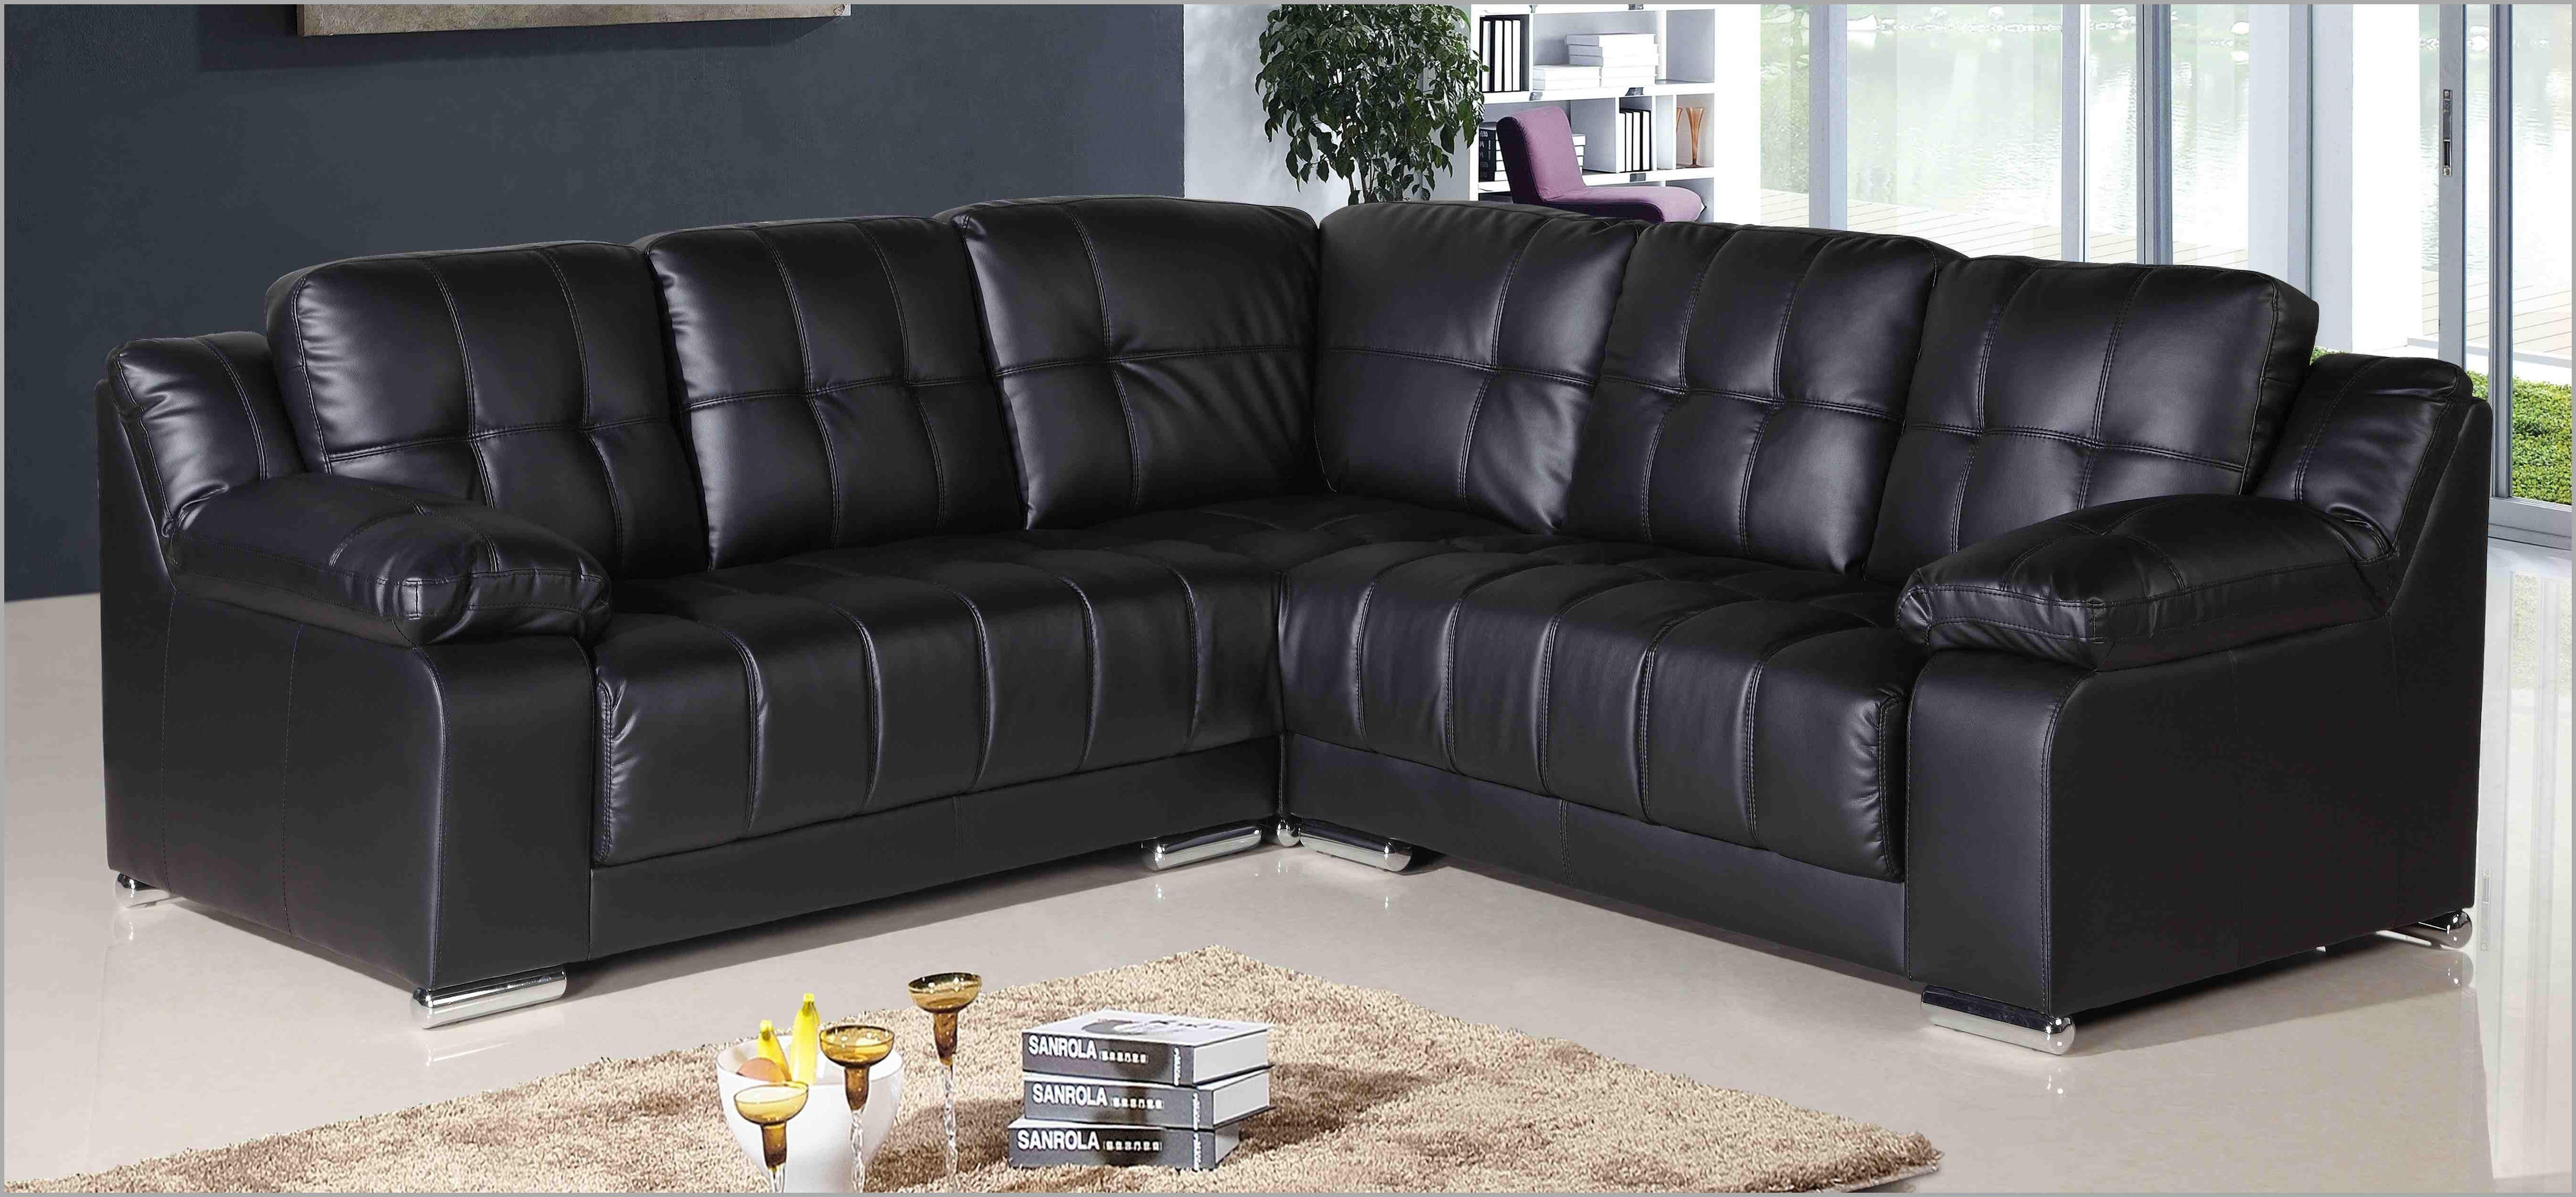 Cheap Black Sofas Within 2018 Inspirational Cheap Black Corner Sofa – Mediasupload (View 9 of 20)